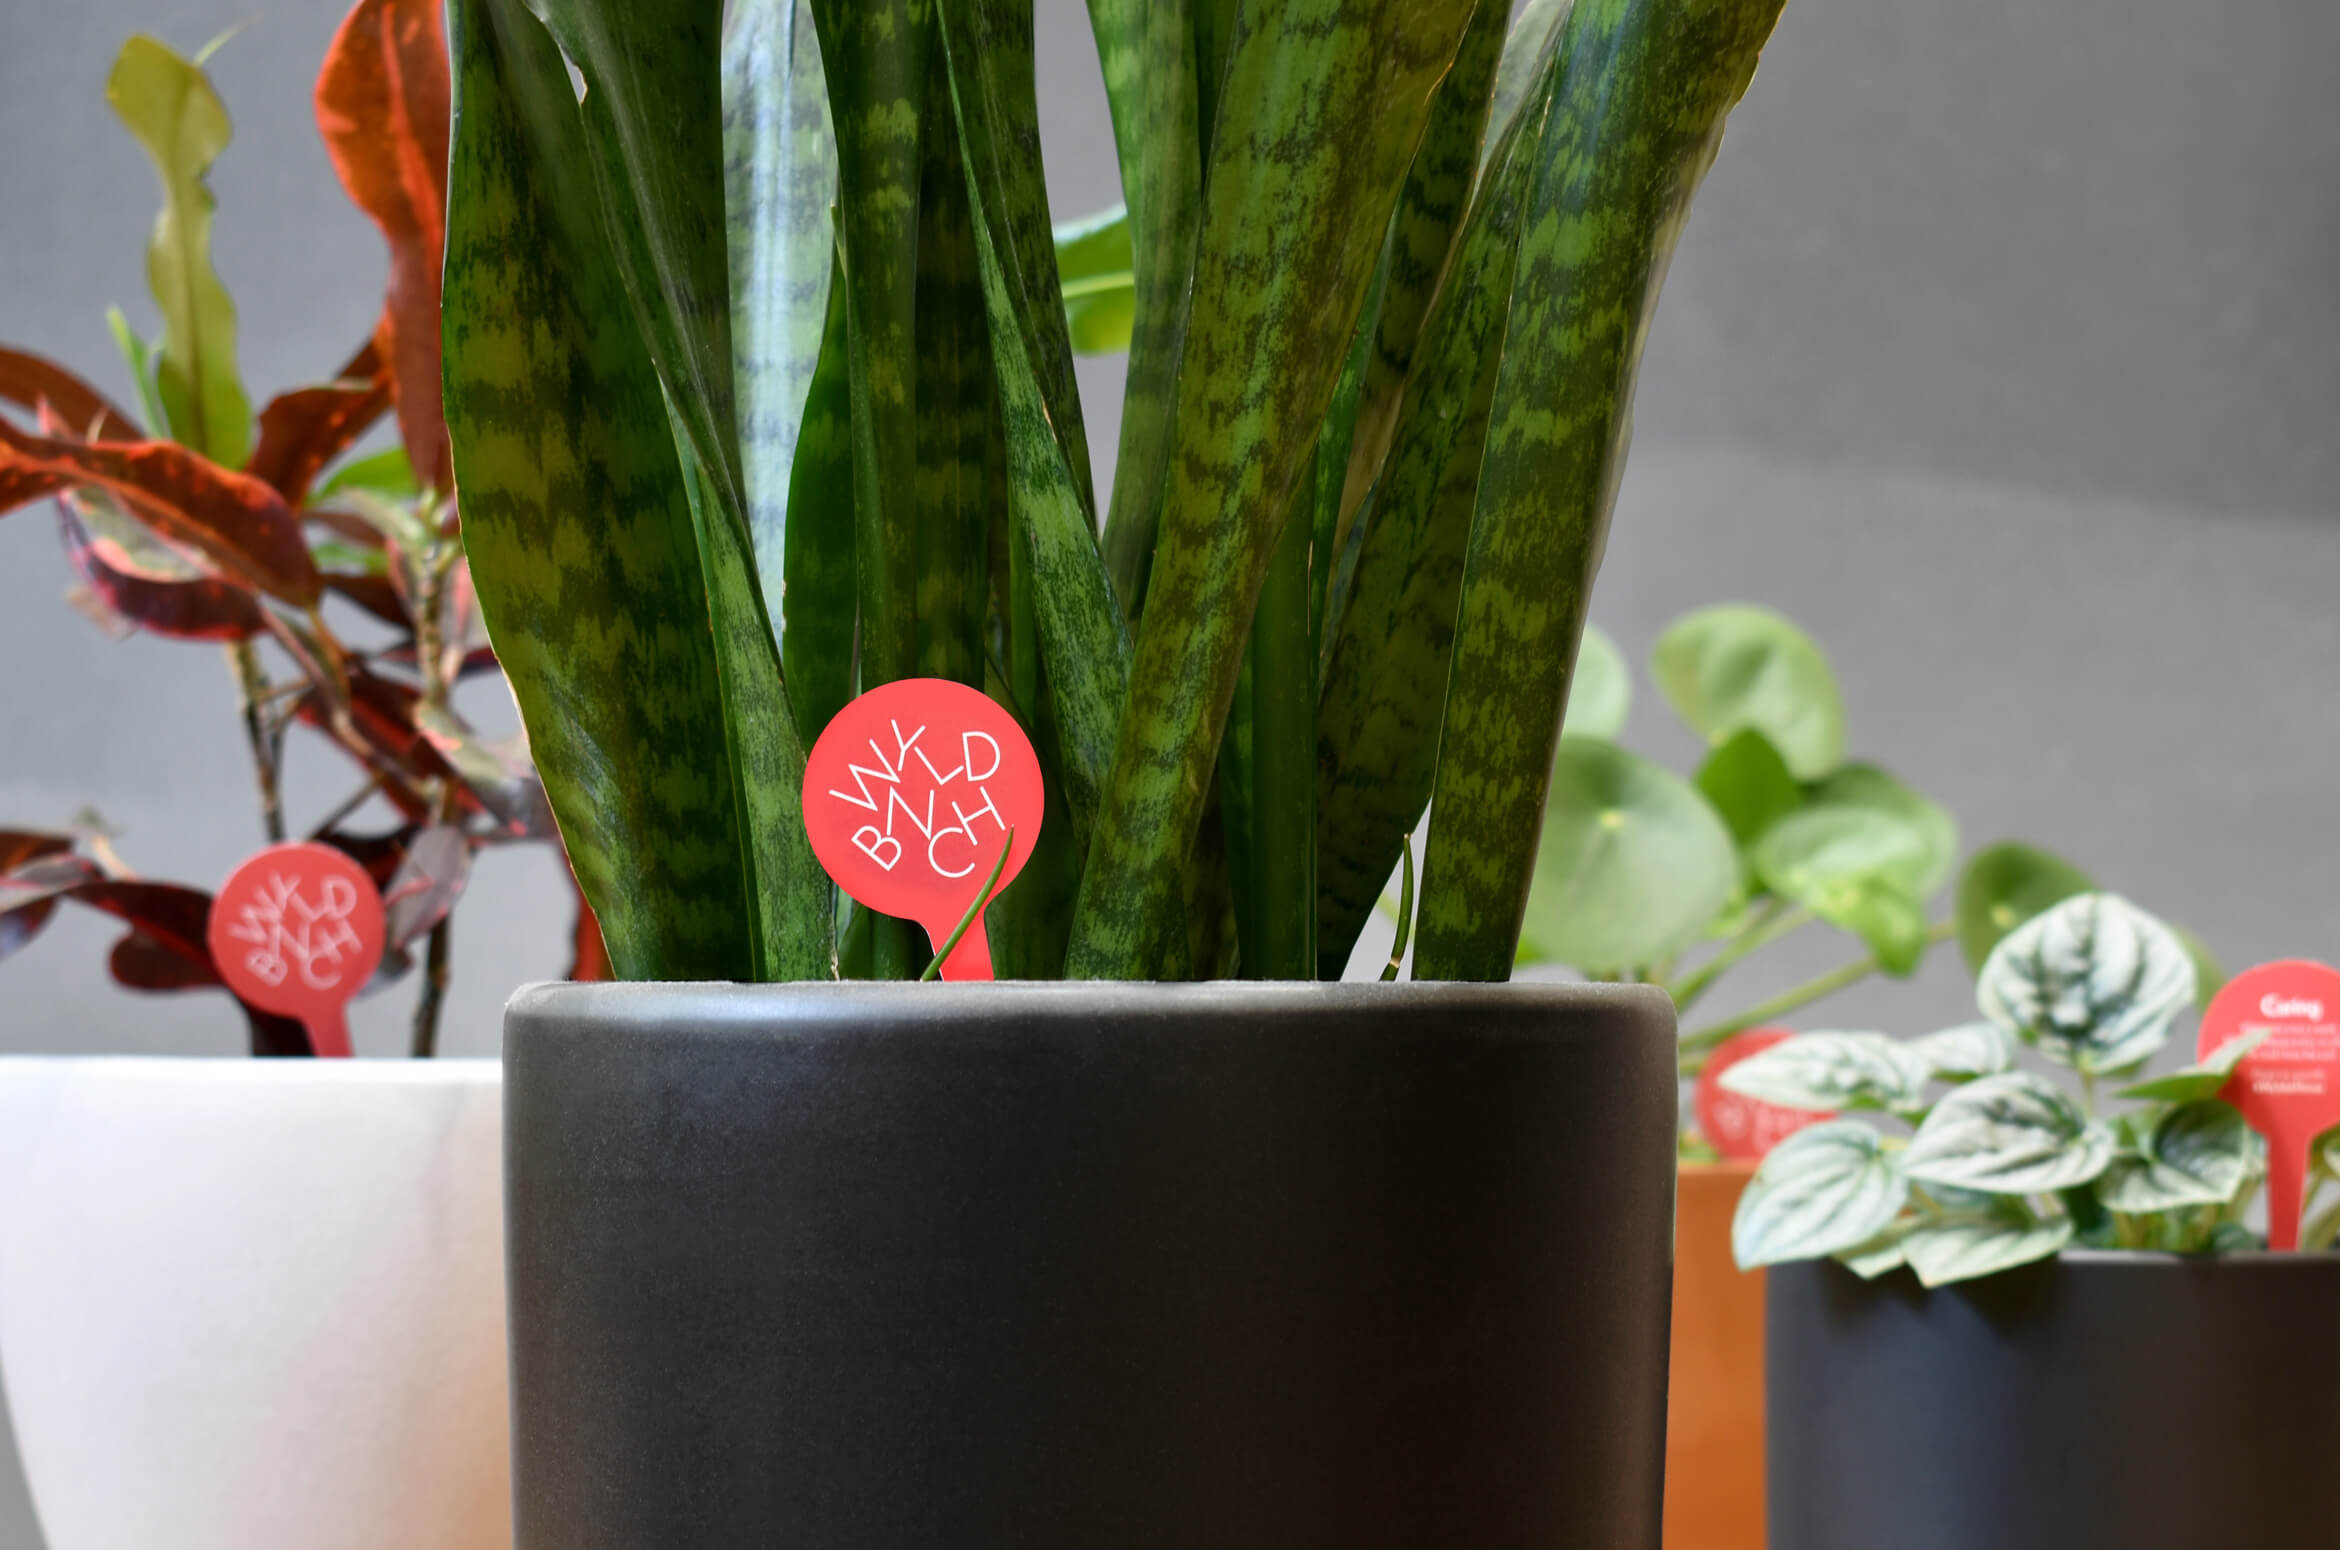 Branded plants stakes in potted plants.